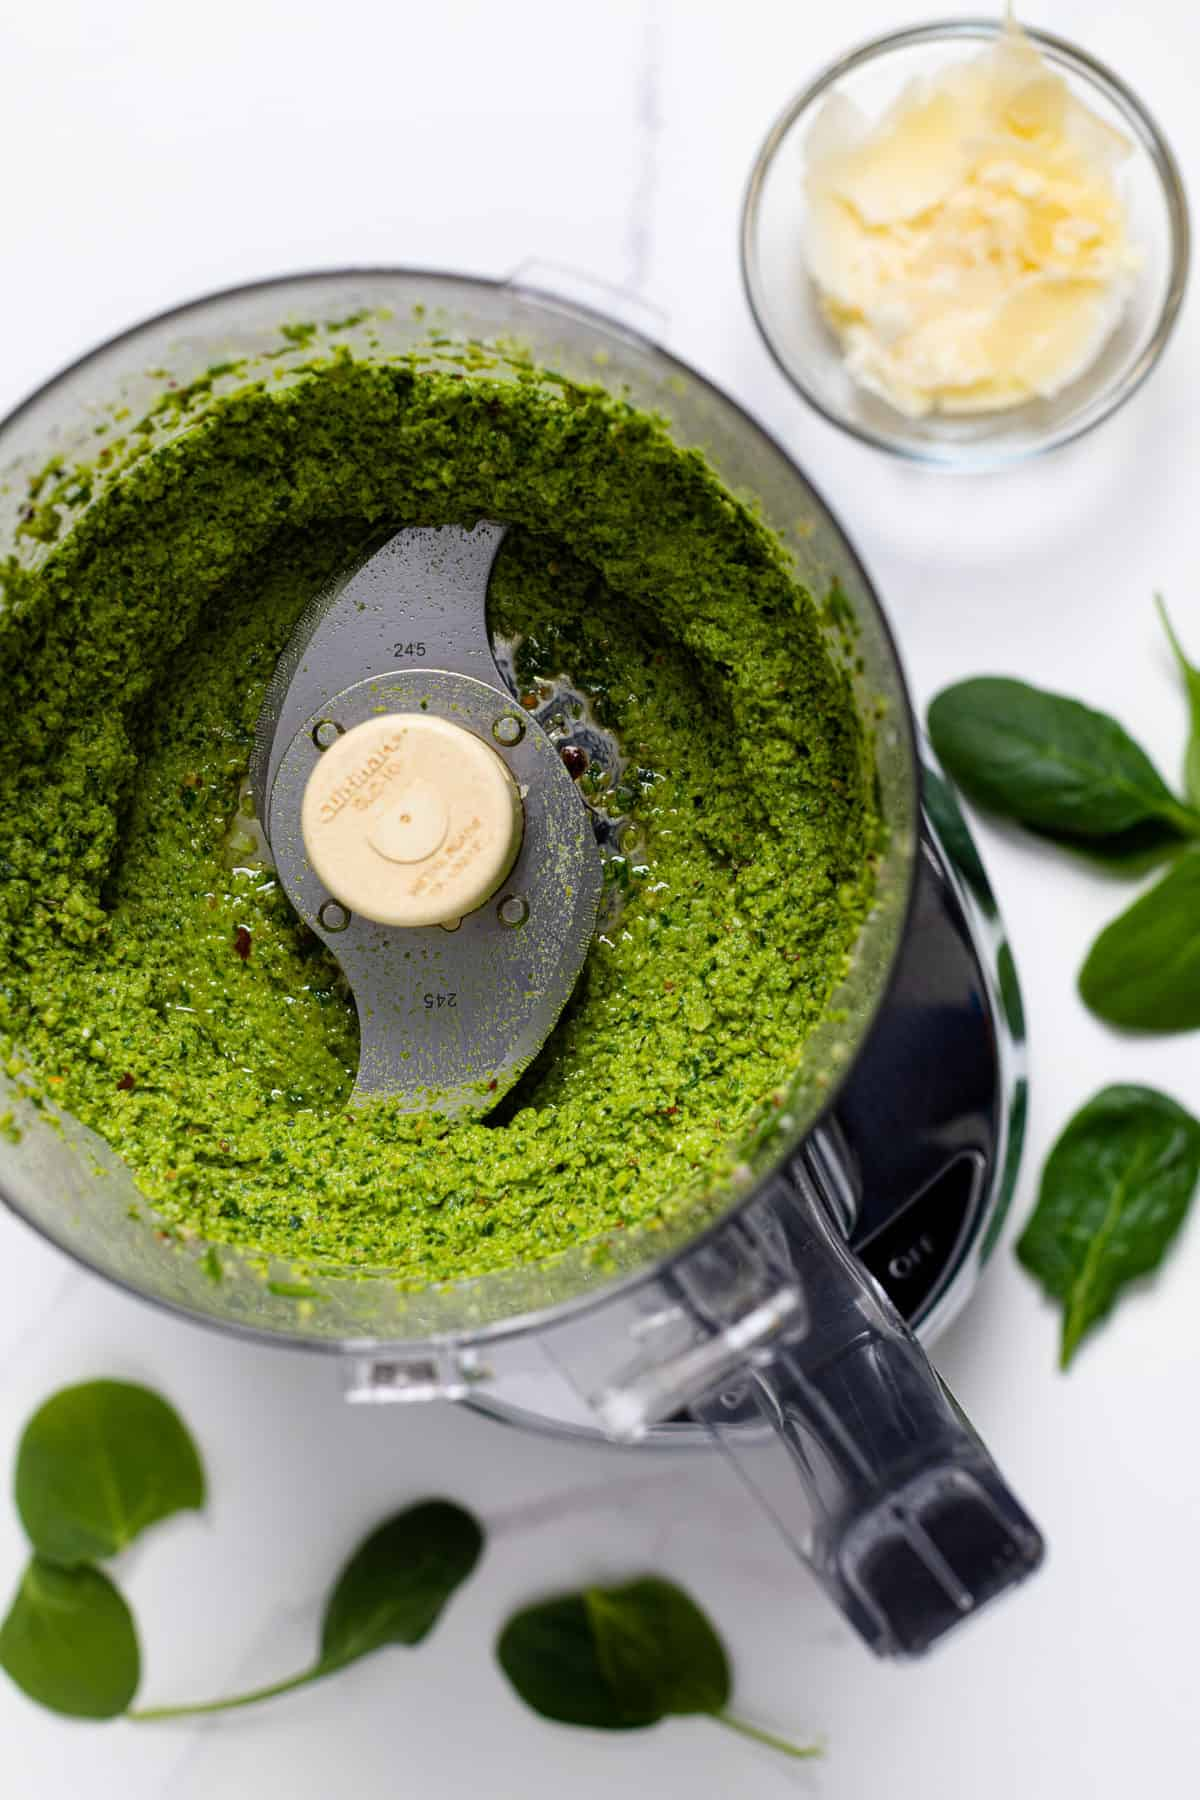 Pesto sauce in a food processor with spinach leaves on the counter